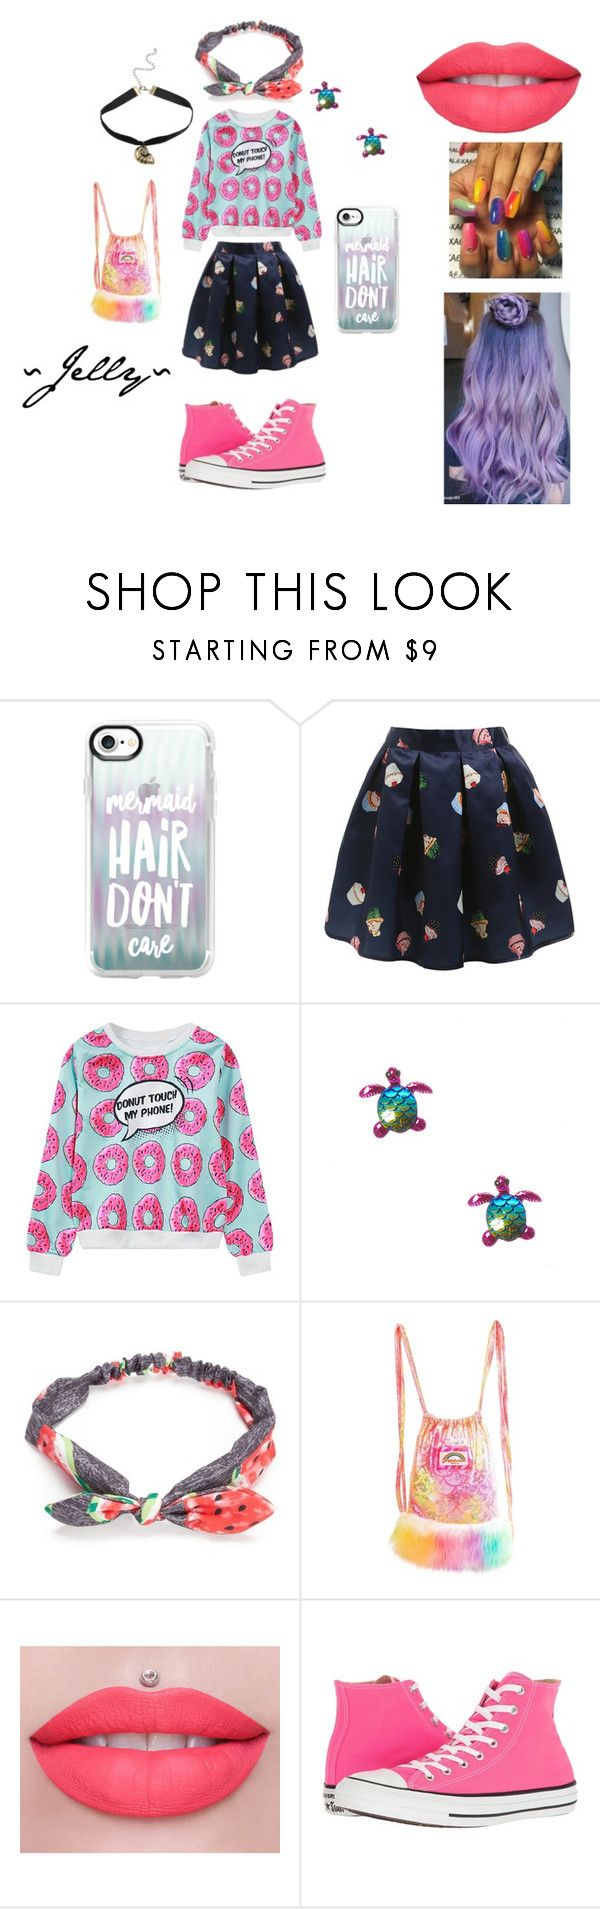 """JDS ~ Jelly"" by bts-obsessed on Polyvore featuring Mode, Casetify, WithChic, Disney, Red Camel, J. Valentine und Converse"